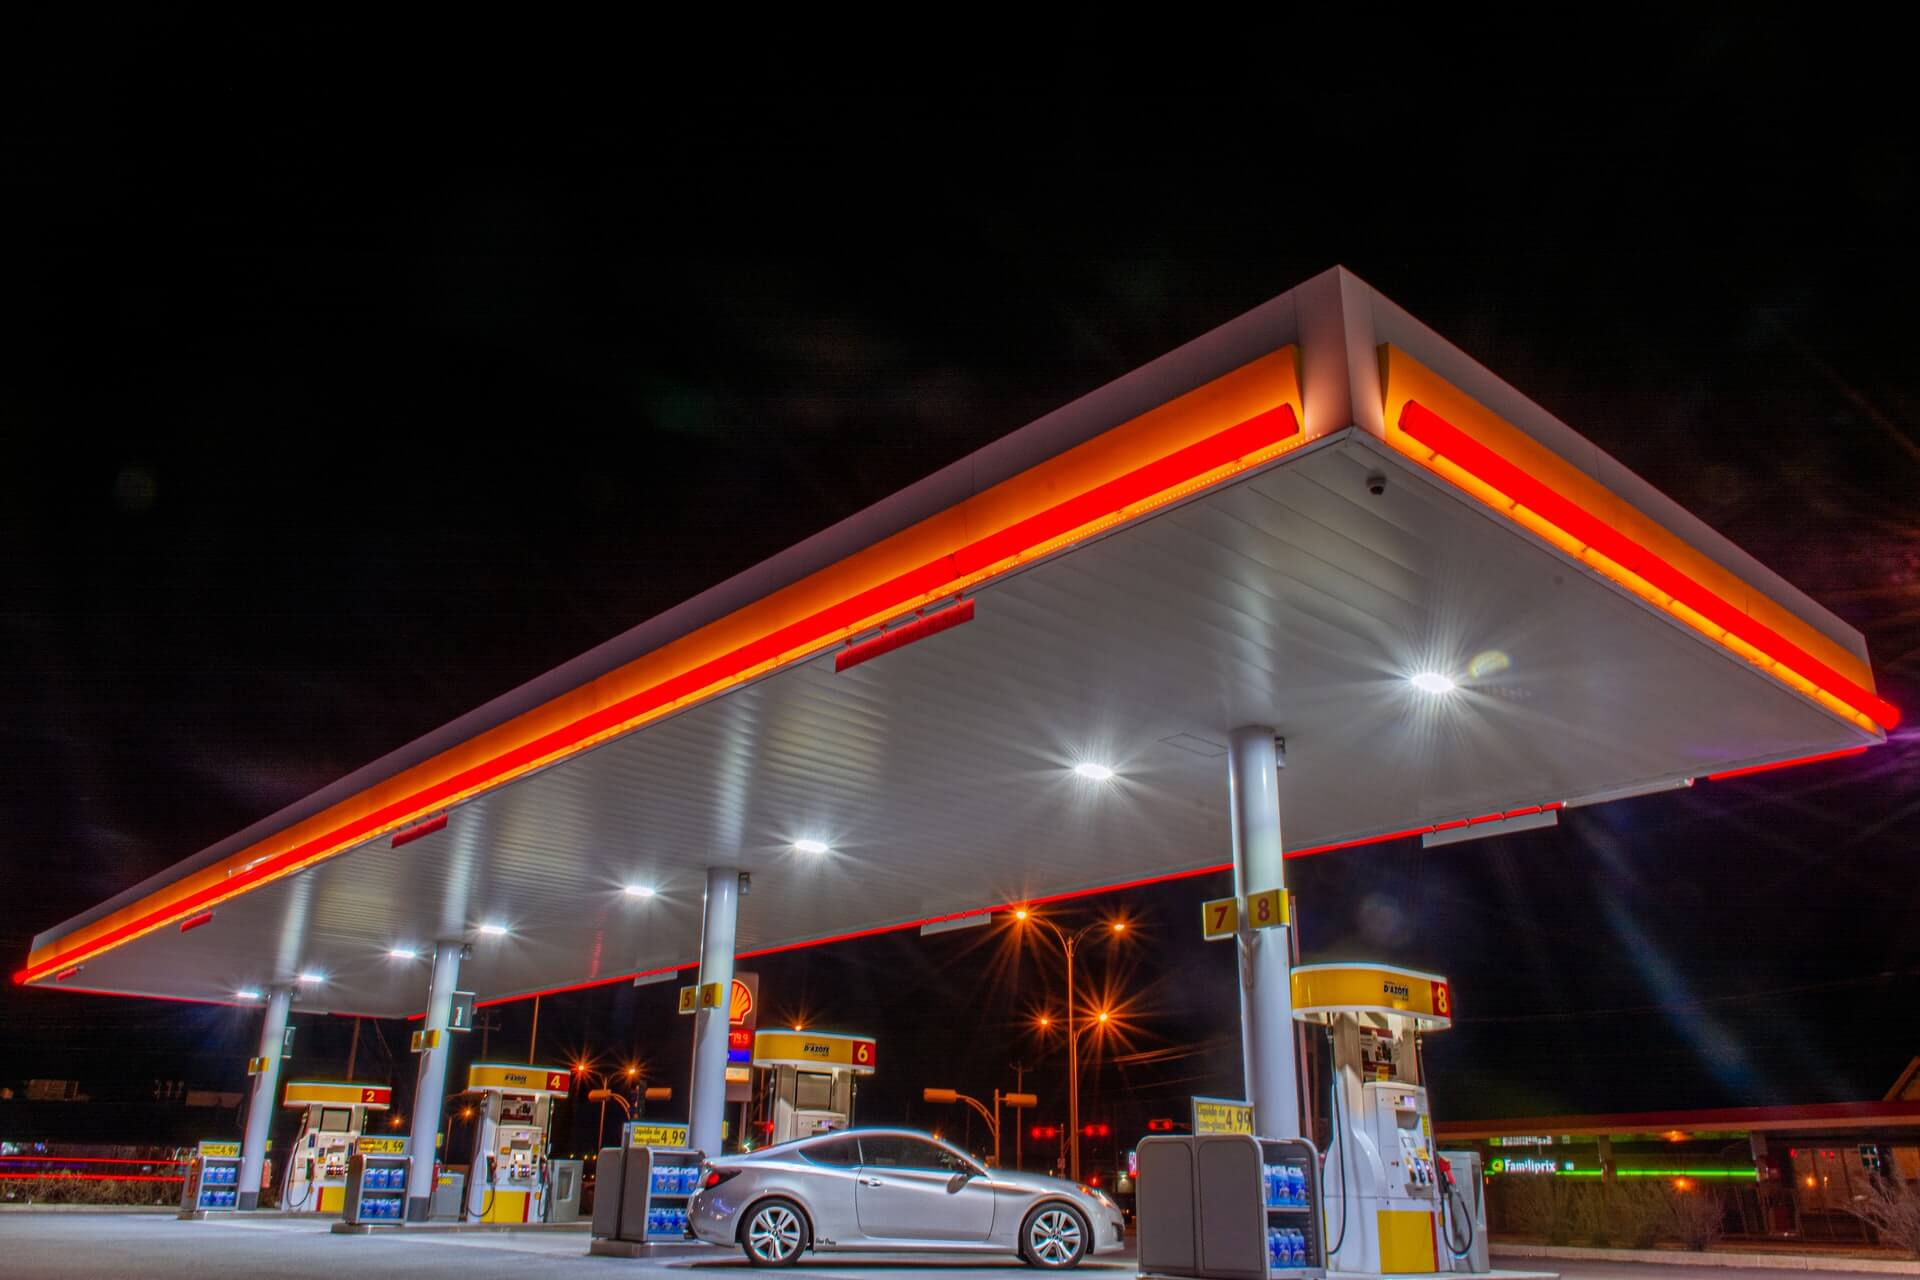 6 Best Credit Cards for Gas 2021: Up to 4% Cash Back on Gas Purchases